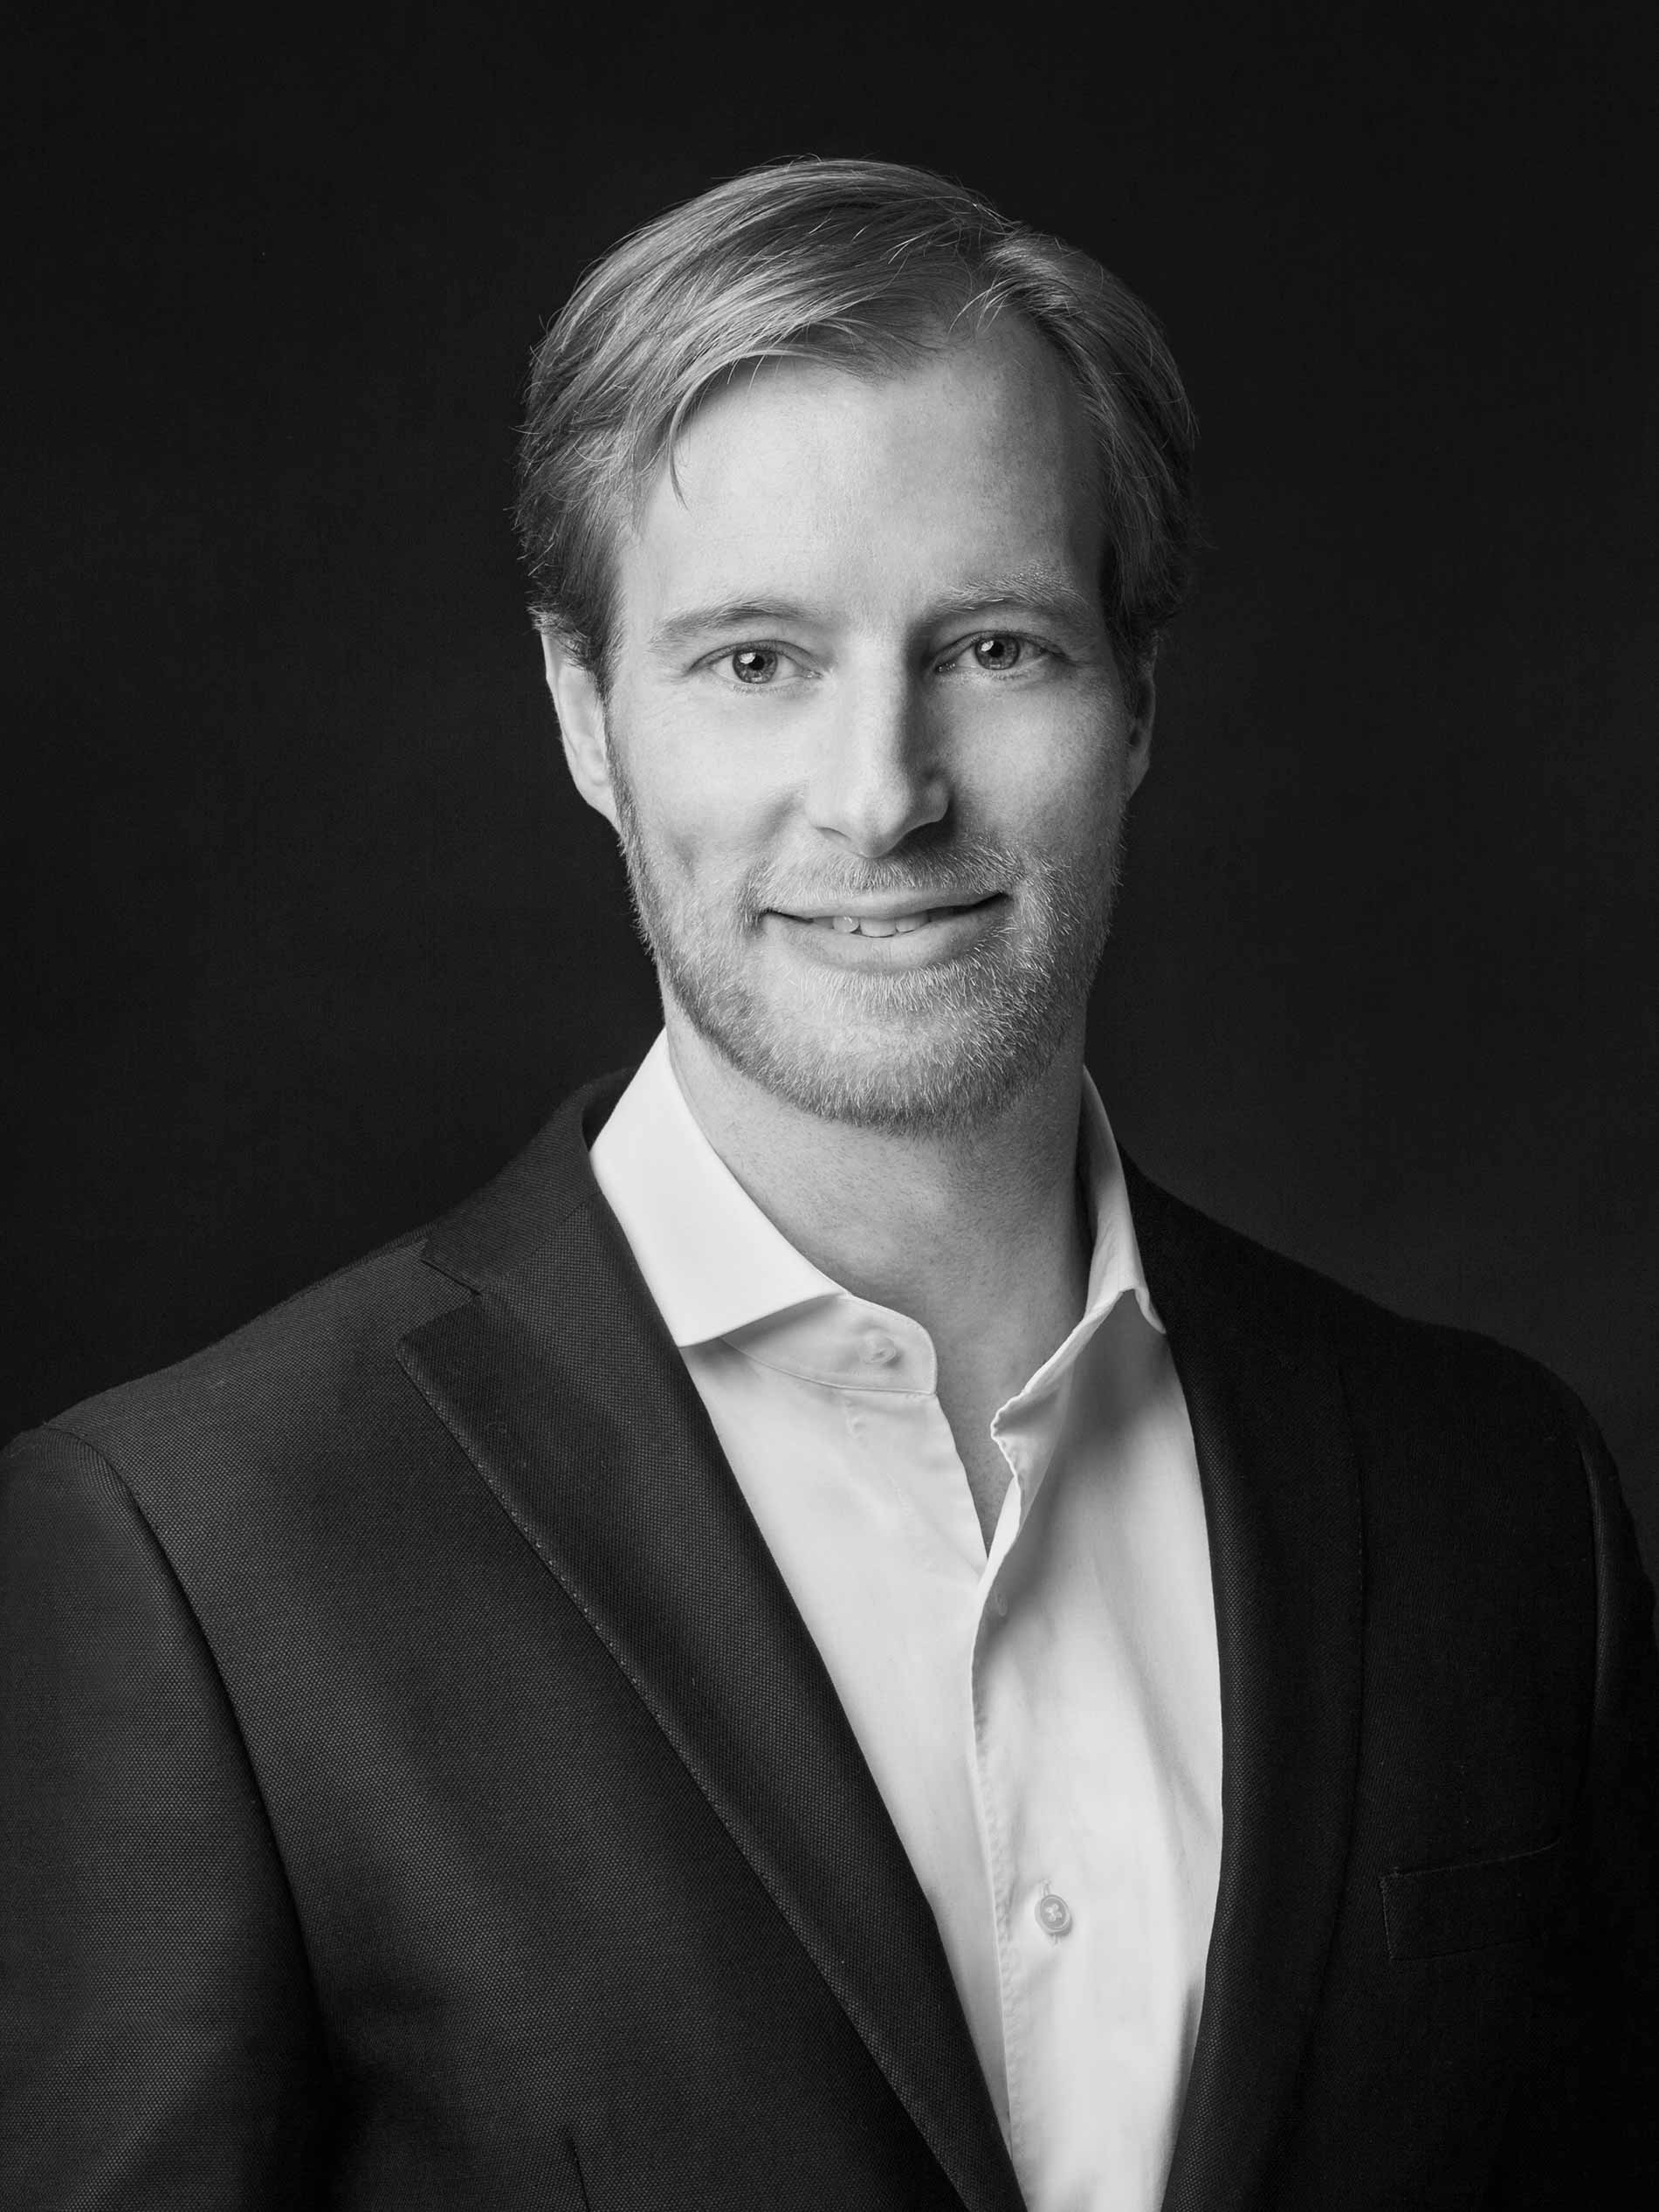 Photo portrait of Florian Mey in black and white | mey®